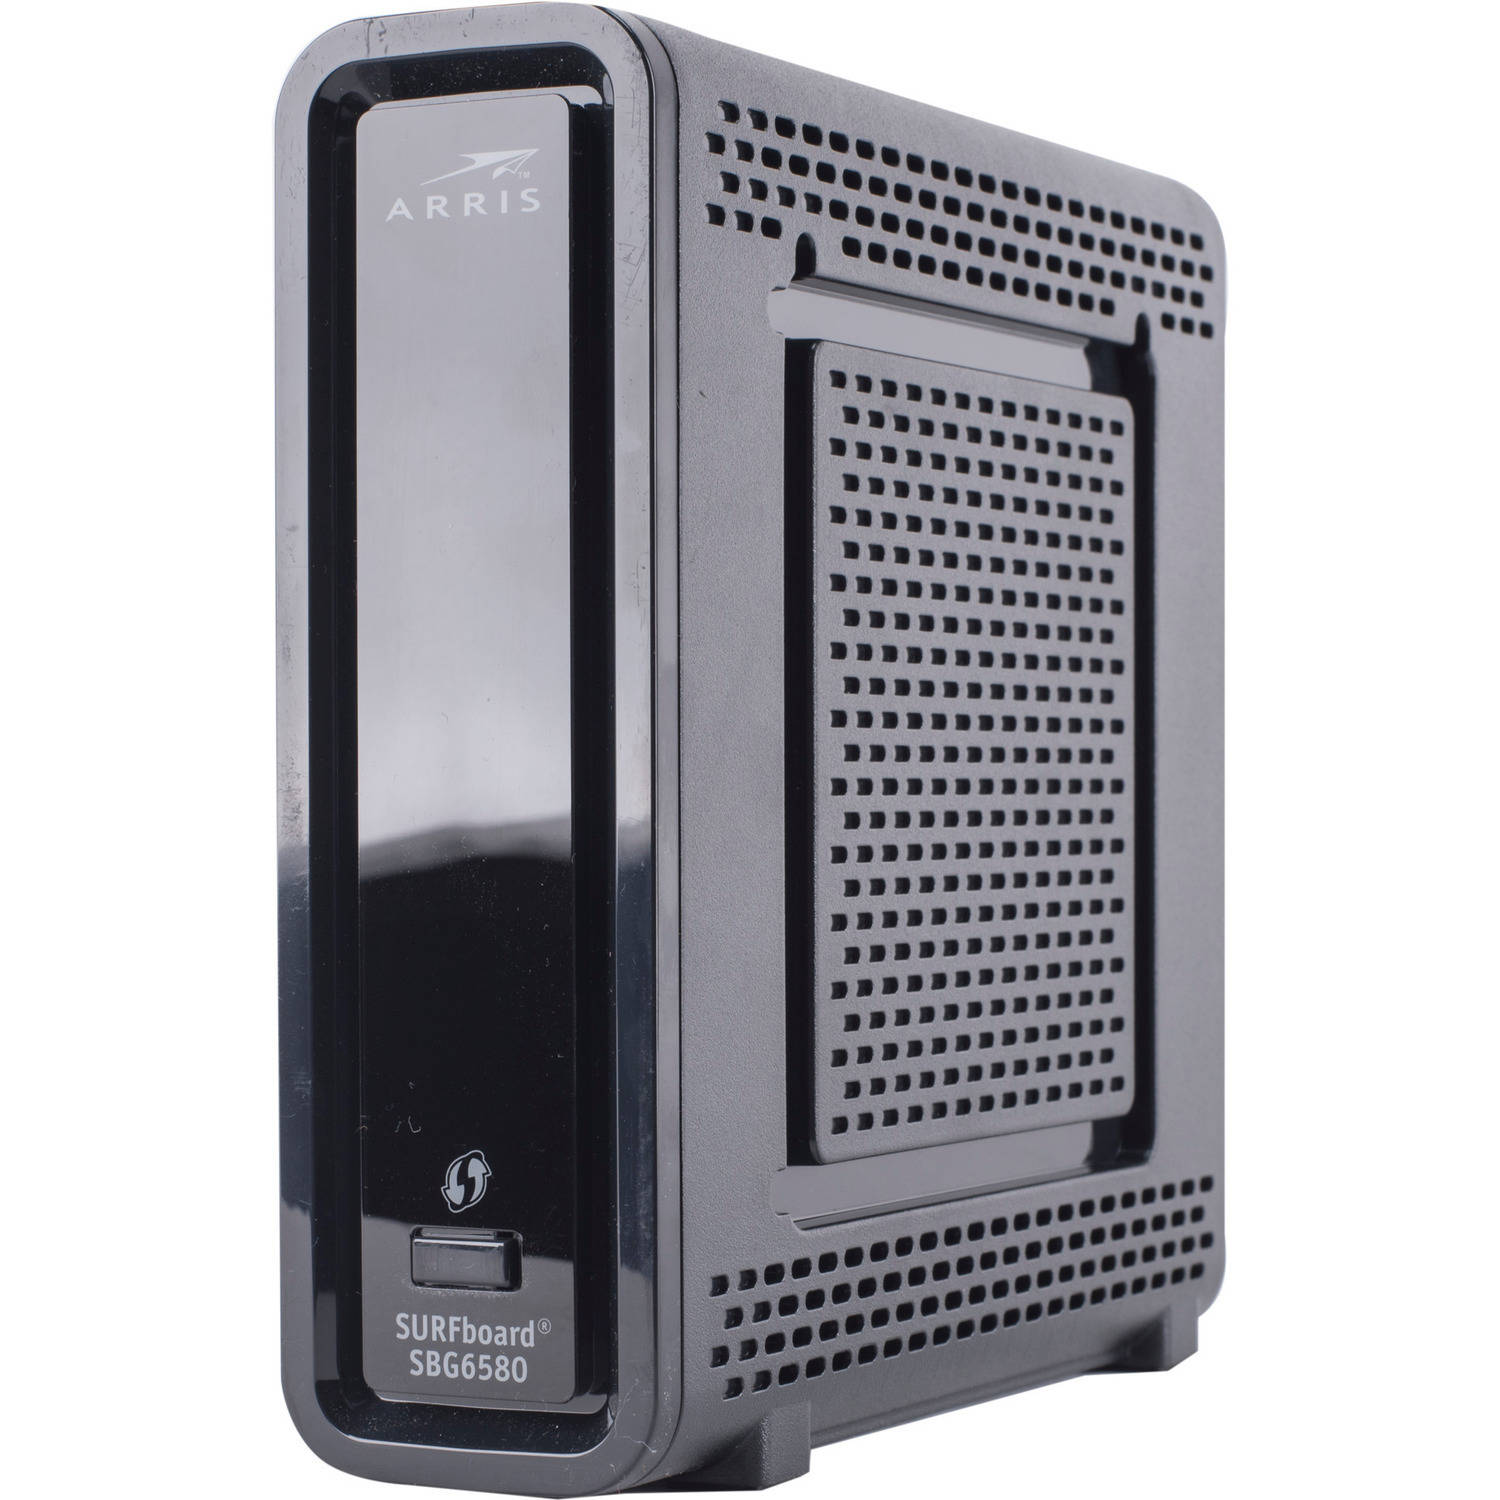 Surfboard modem jpg black and white ARRIS SURFboard SBG6580 DOCSIS 3.0 Cable Modem / N600 Wi-Fi Router ... jpg black and white